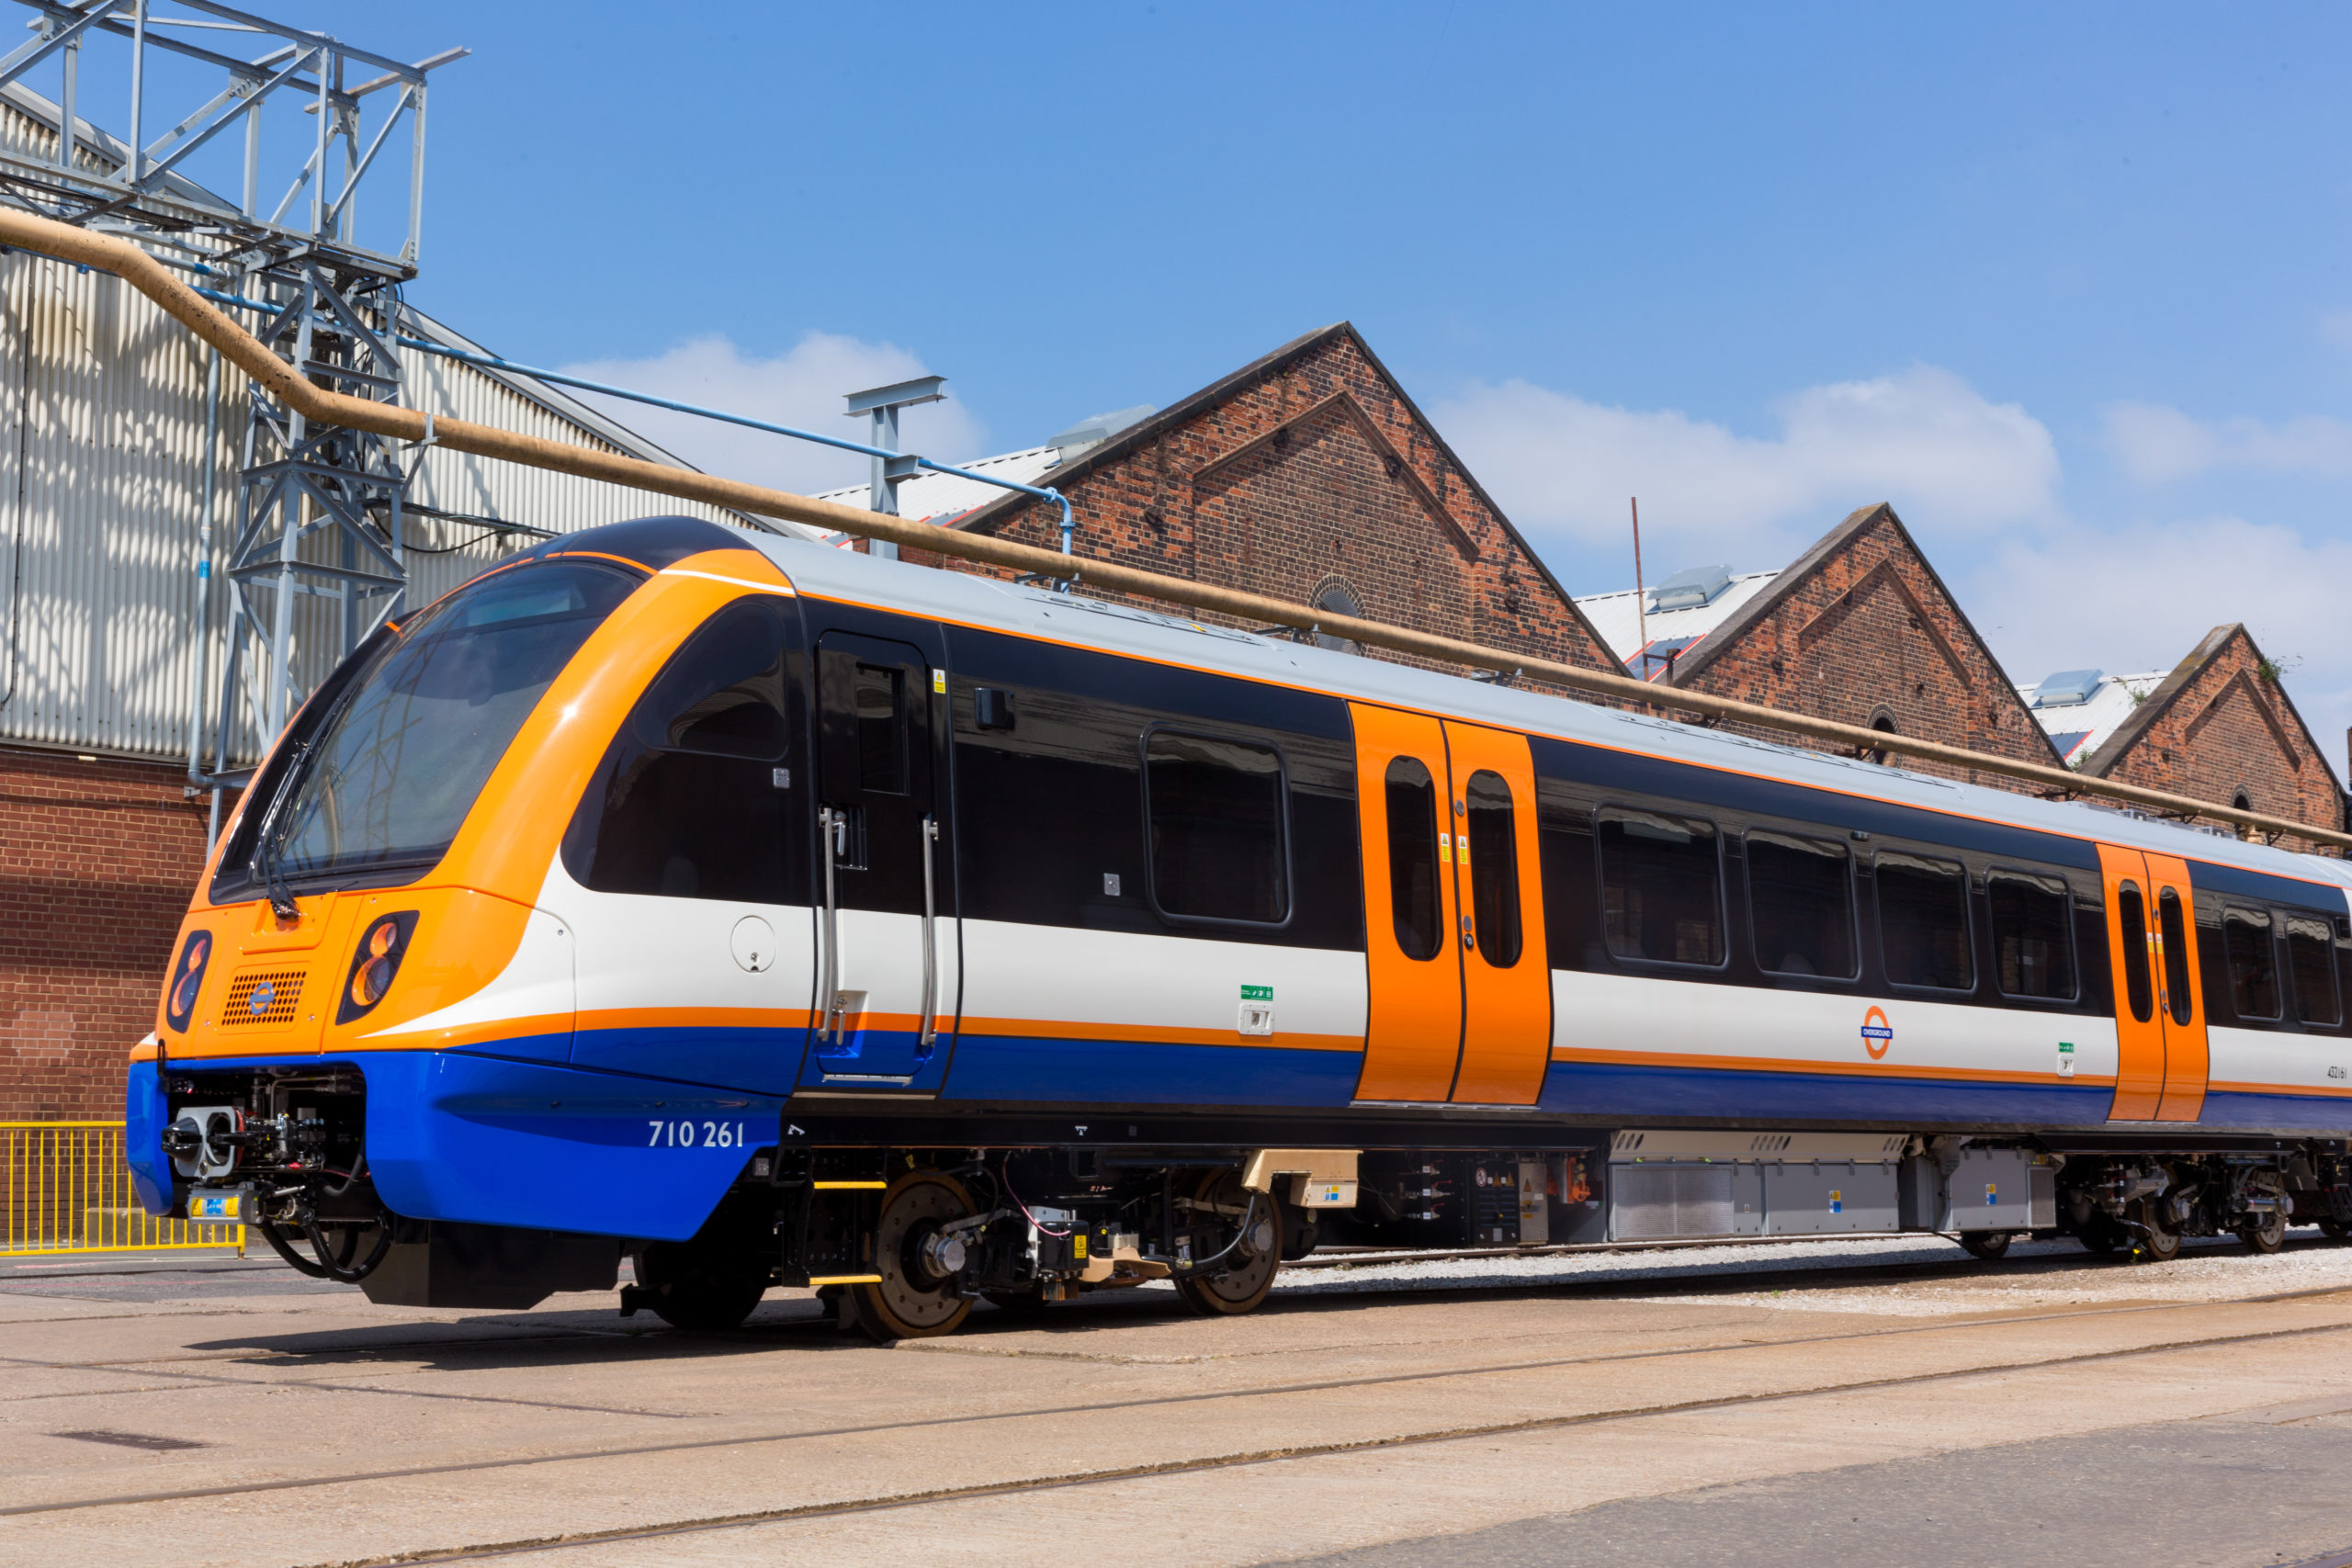 Bombardier Class 710 AVENTRA for London Overground